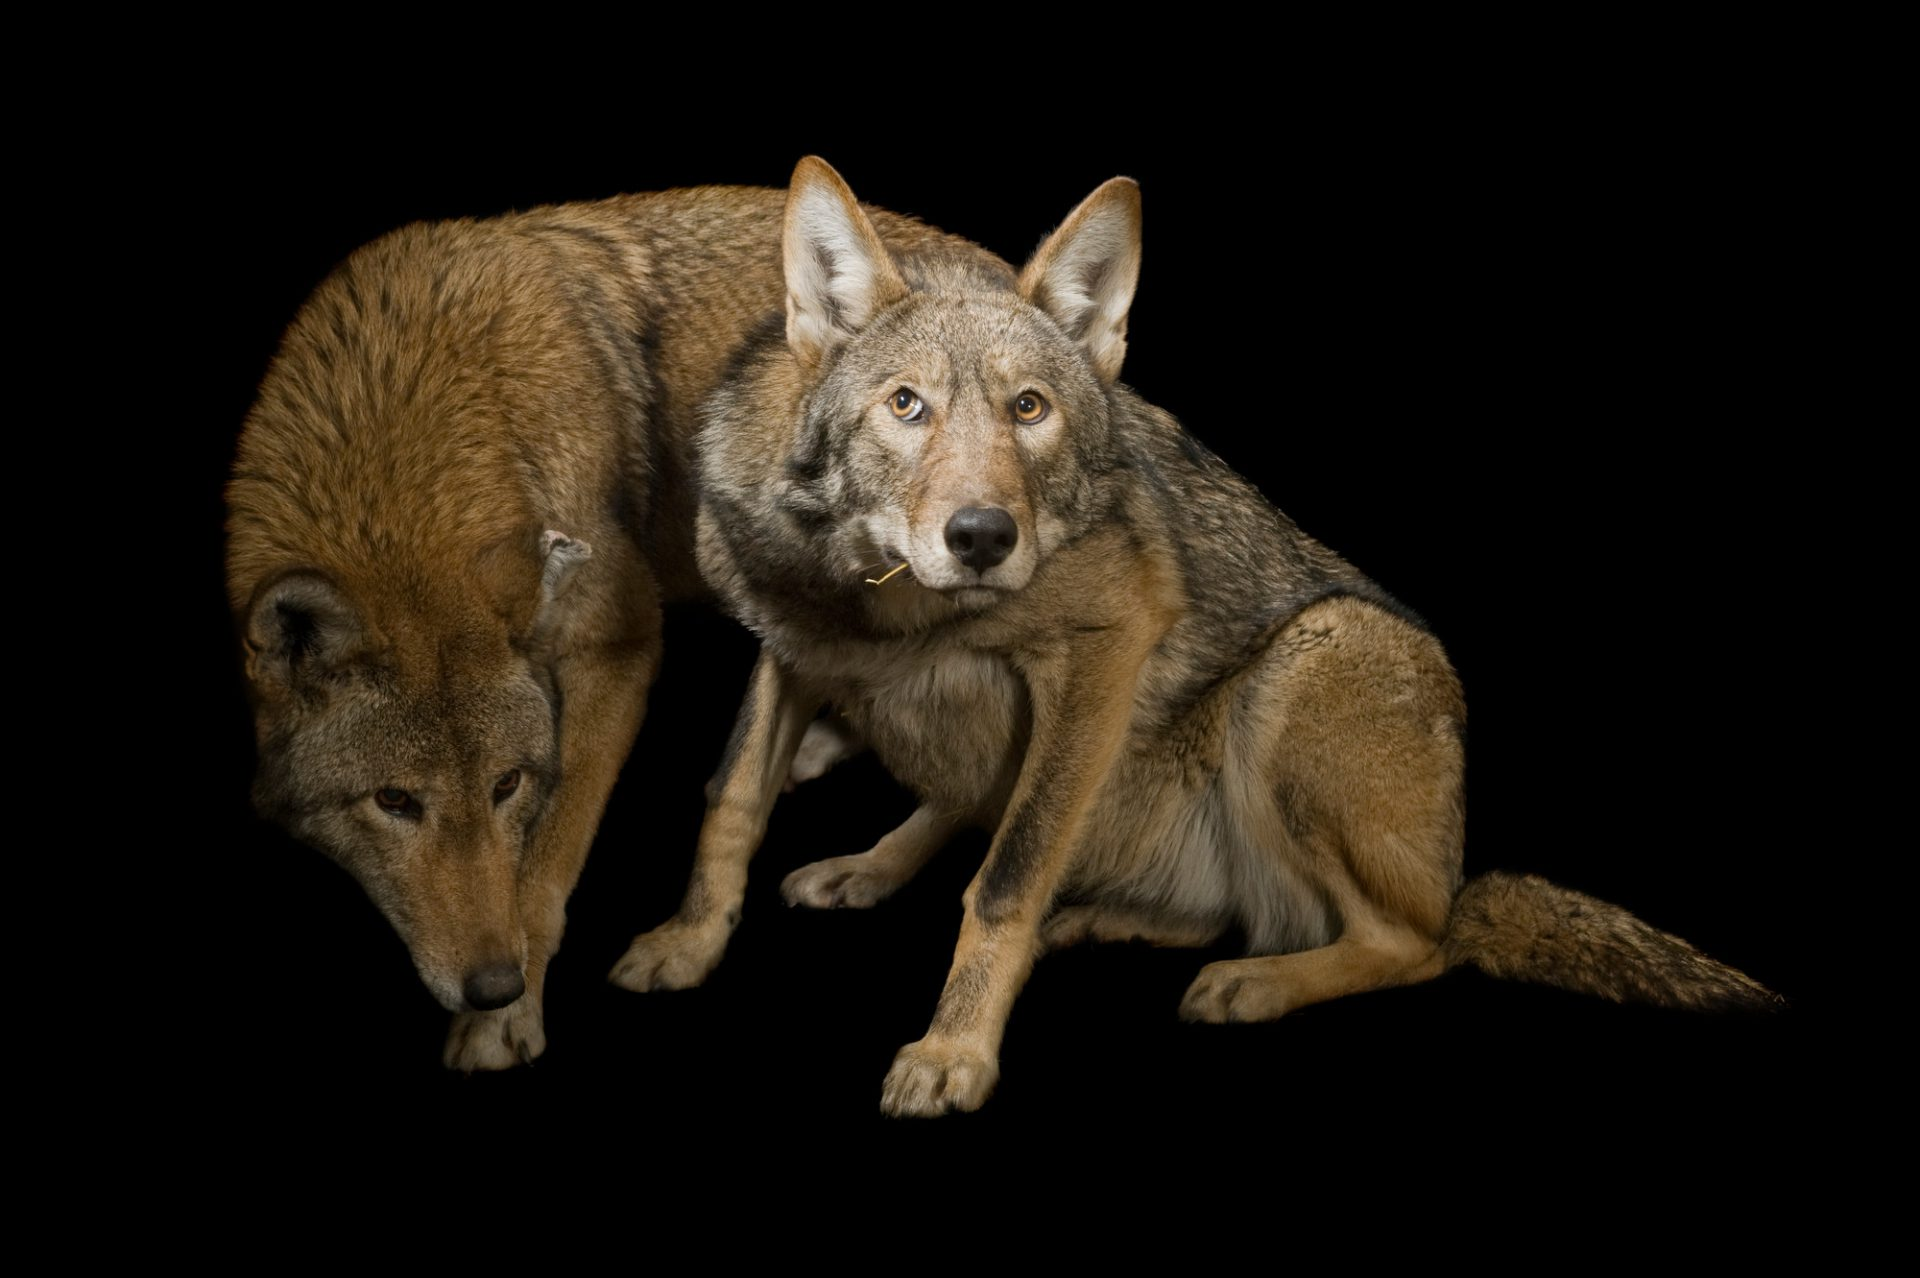 A critically endangered (IUCN) and federally endangered red wolf (Canis rufus gregoryi) at the Great Plains Zoo.